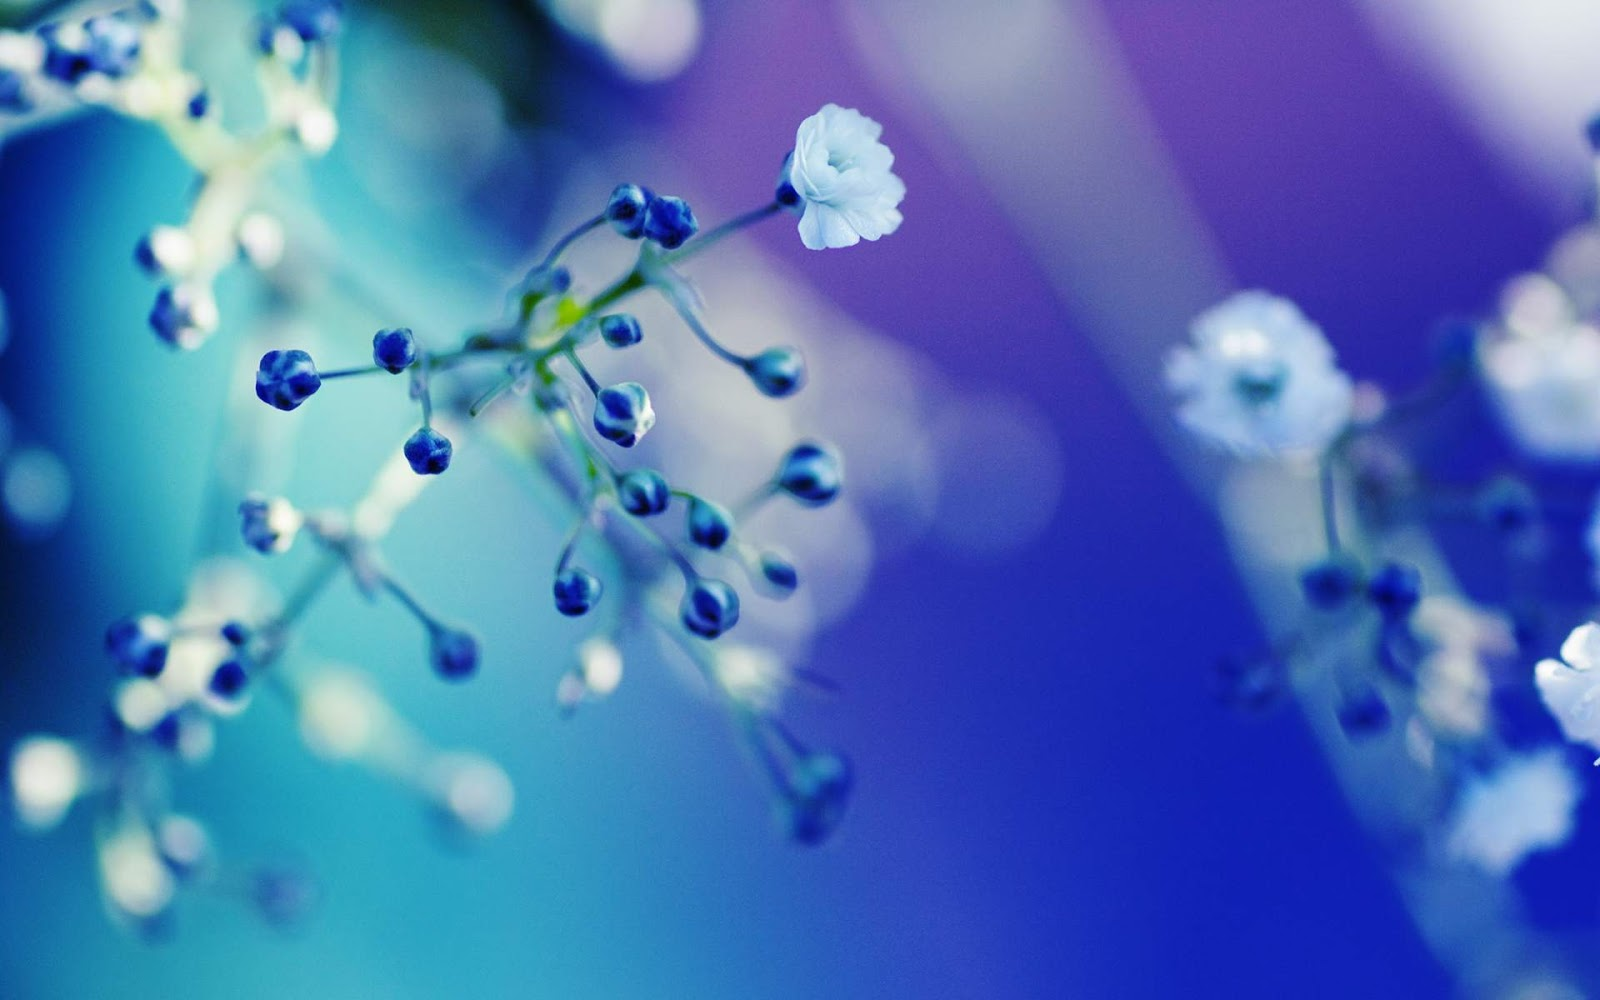 Free 3D Wallpapers Download  Blue Flowers Close Up Wallpapers Blue Flowers Close Up Wallpapers